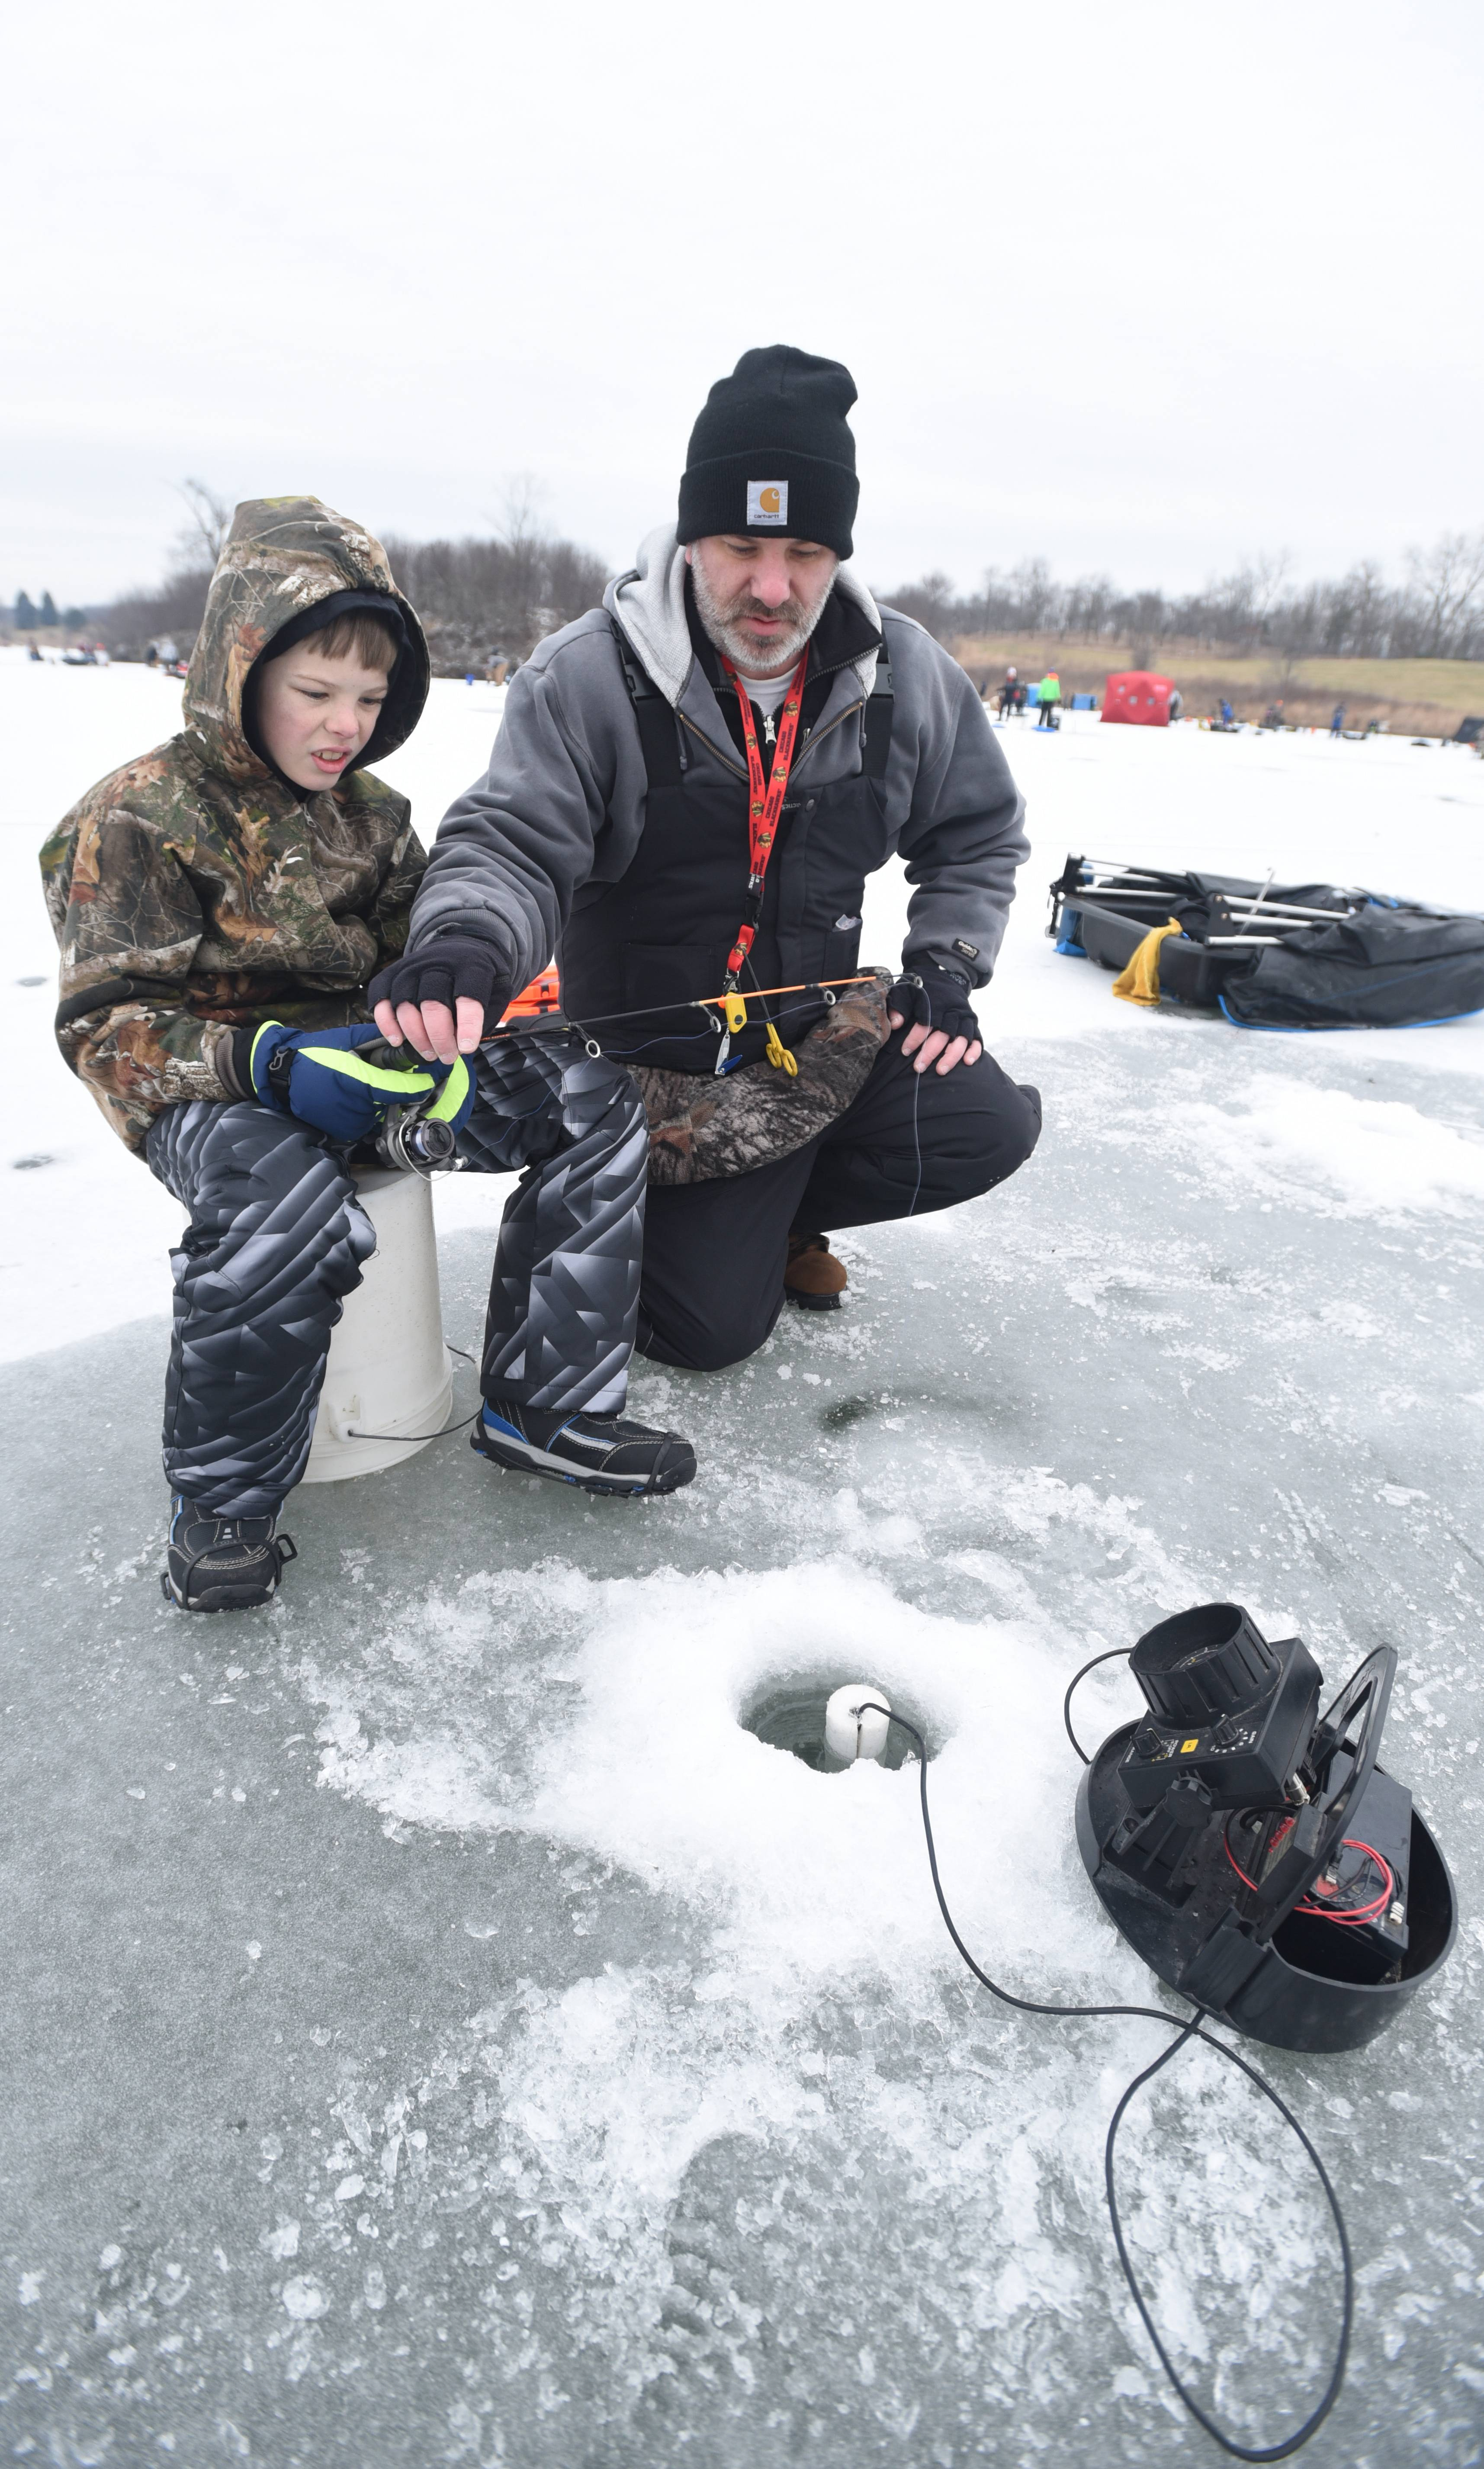 Paul Michna/pmichna@dailyherald.comPatrick Barnat,11, of Plainfield and his uncle Ed Barnat of Downers Grove fish the day away.The DuPage County Forest Preserve District will sponsor its Hard Water Classic ice fishing tournament from noon to 3:30 p.m. Saturday, Jan. 14, on the 62-acre Silver Lake at Blackwell Forest Preserve in Warrenville